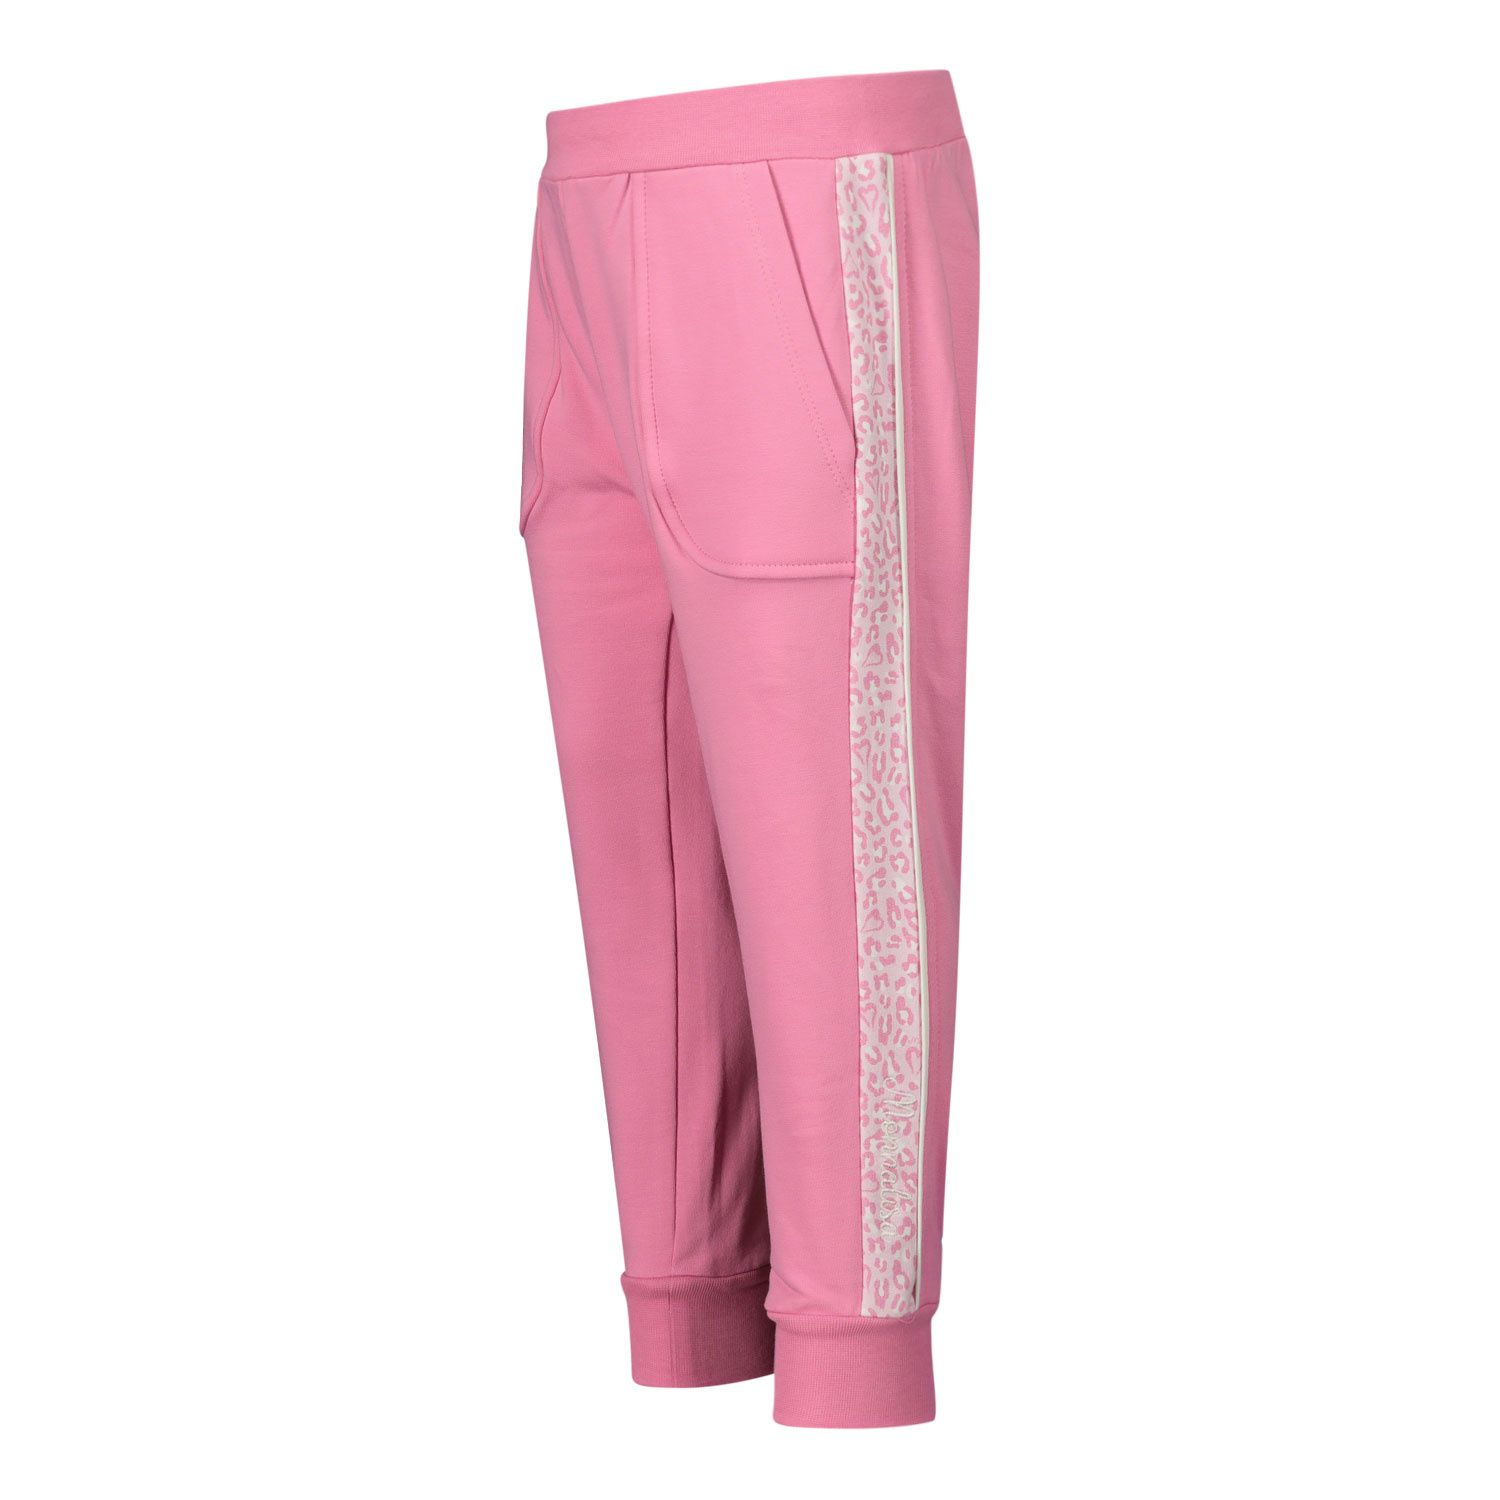 Picture of MonnaLisa 396412 baby pants light pink